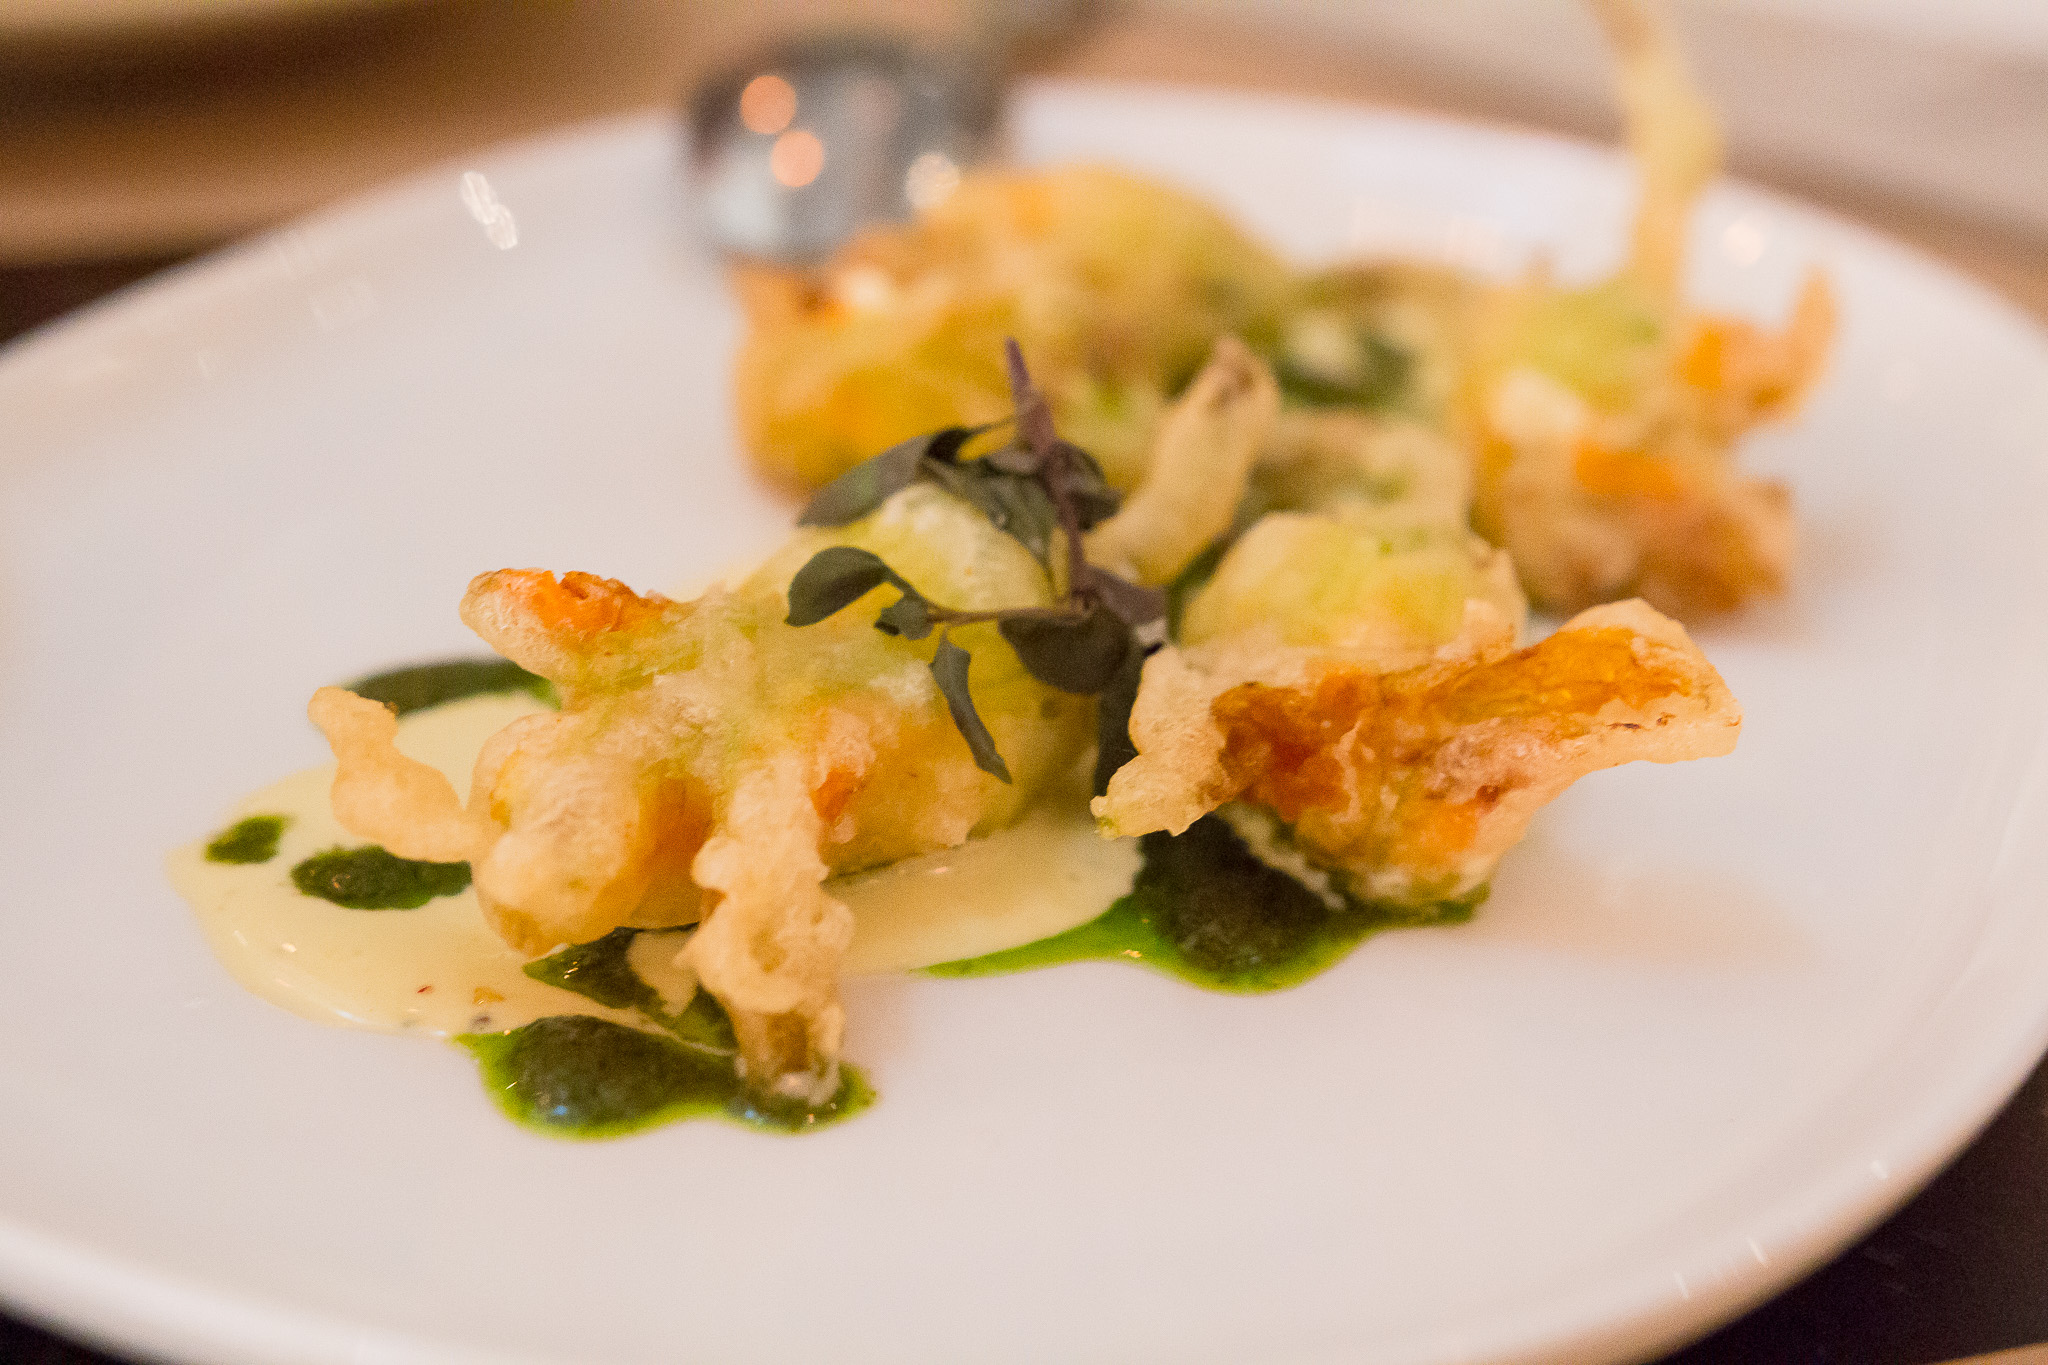 Stuffed squash blossoms at Cucina Enoteca.